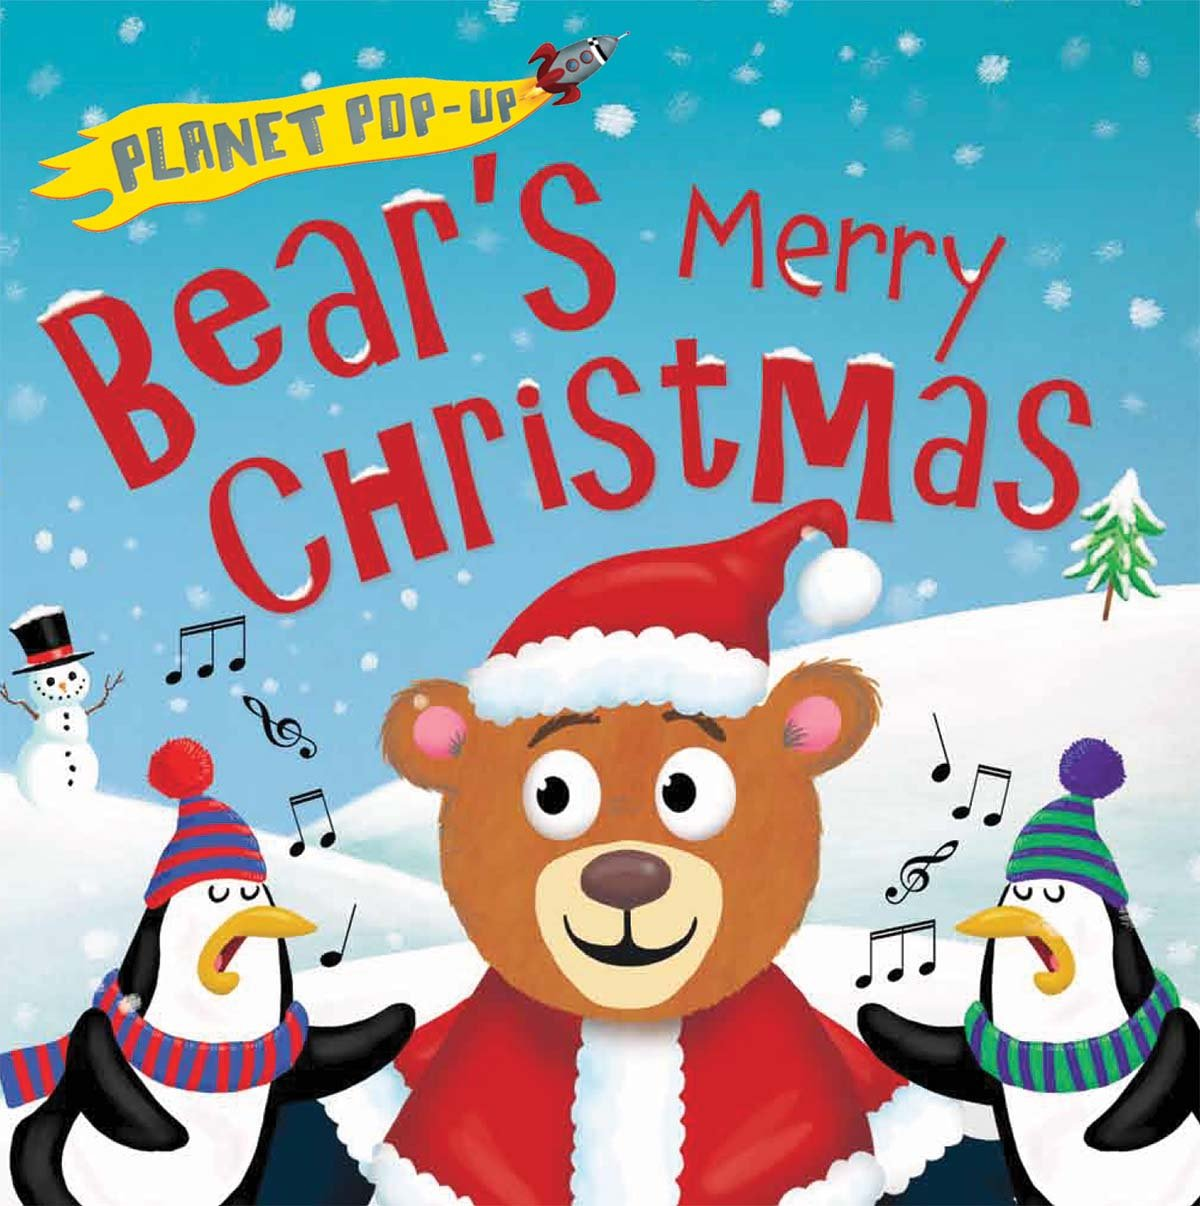 Bear's Merry Christmas Pop-Up Book